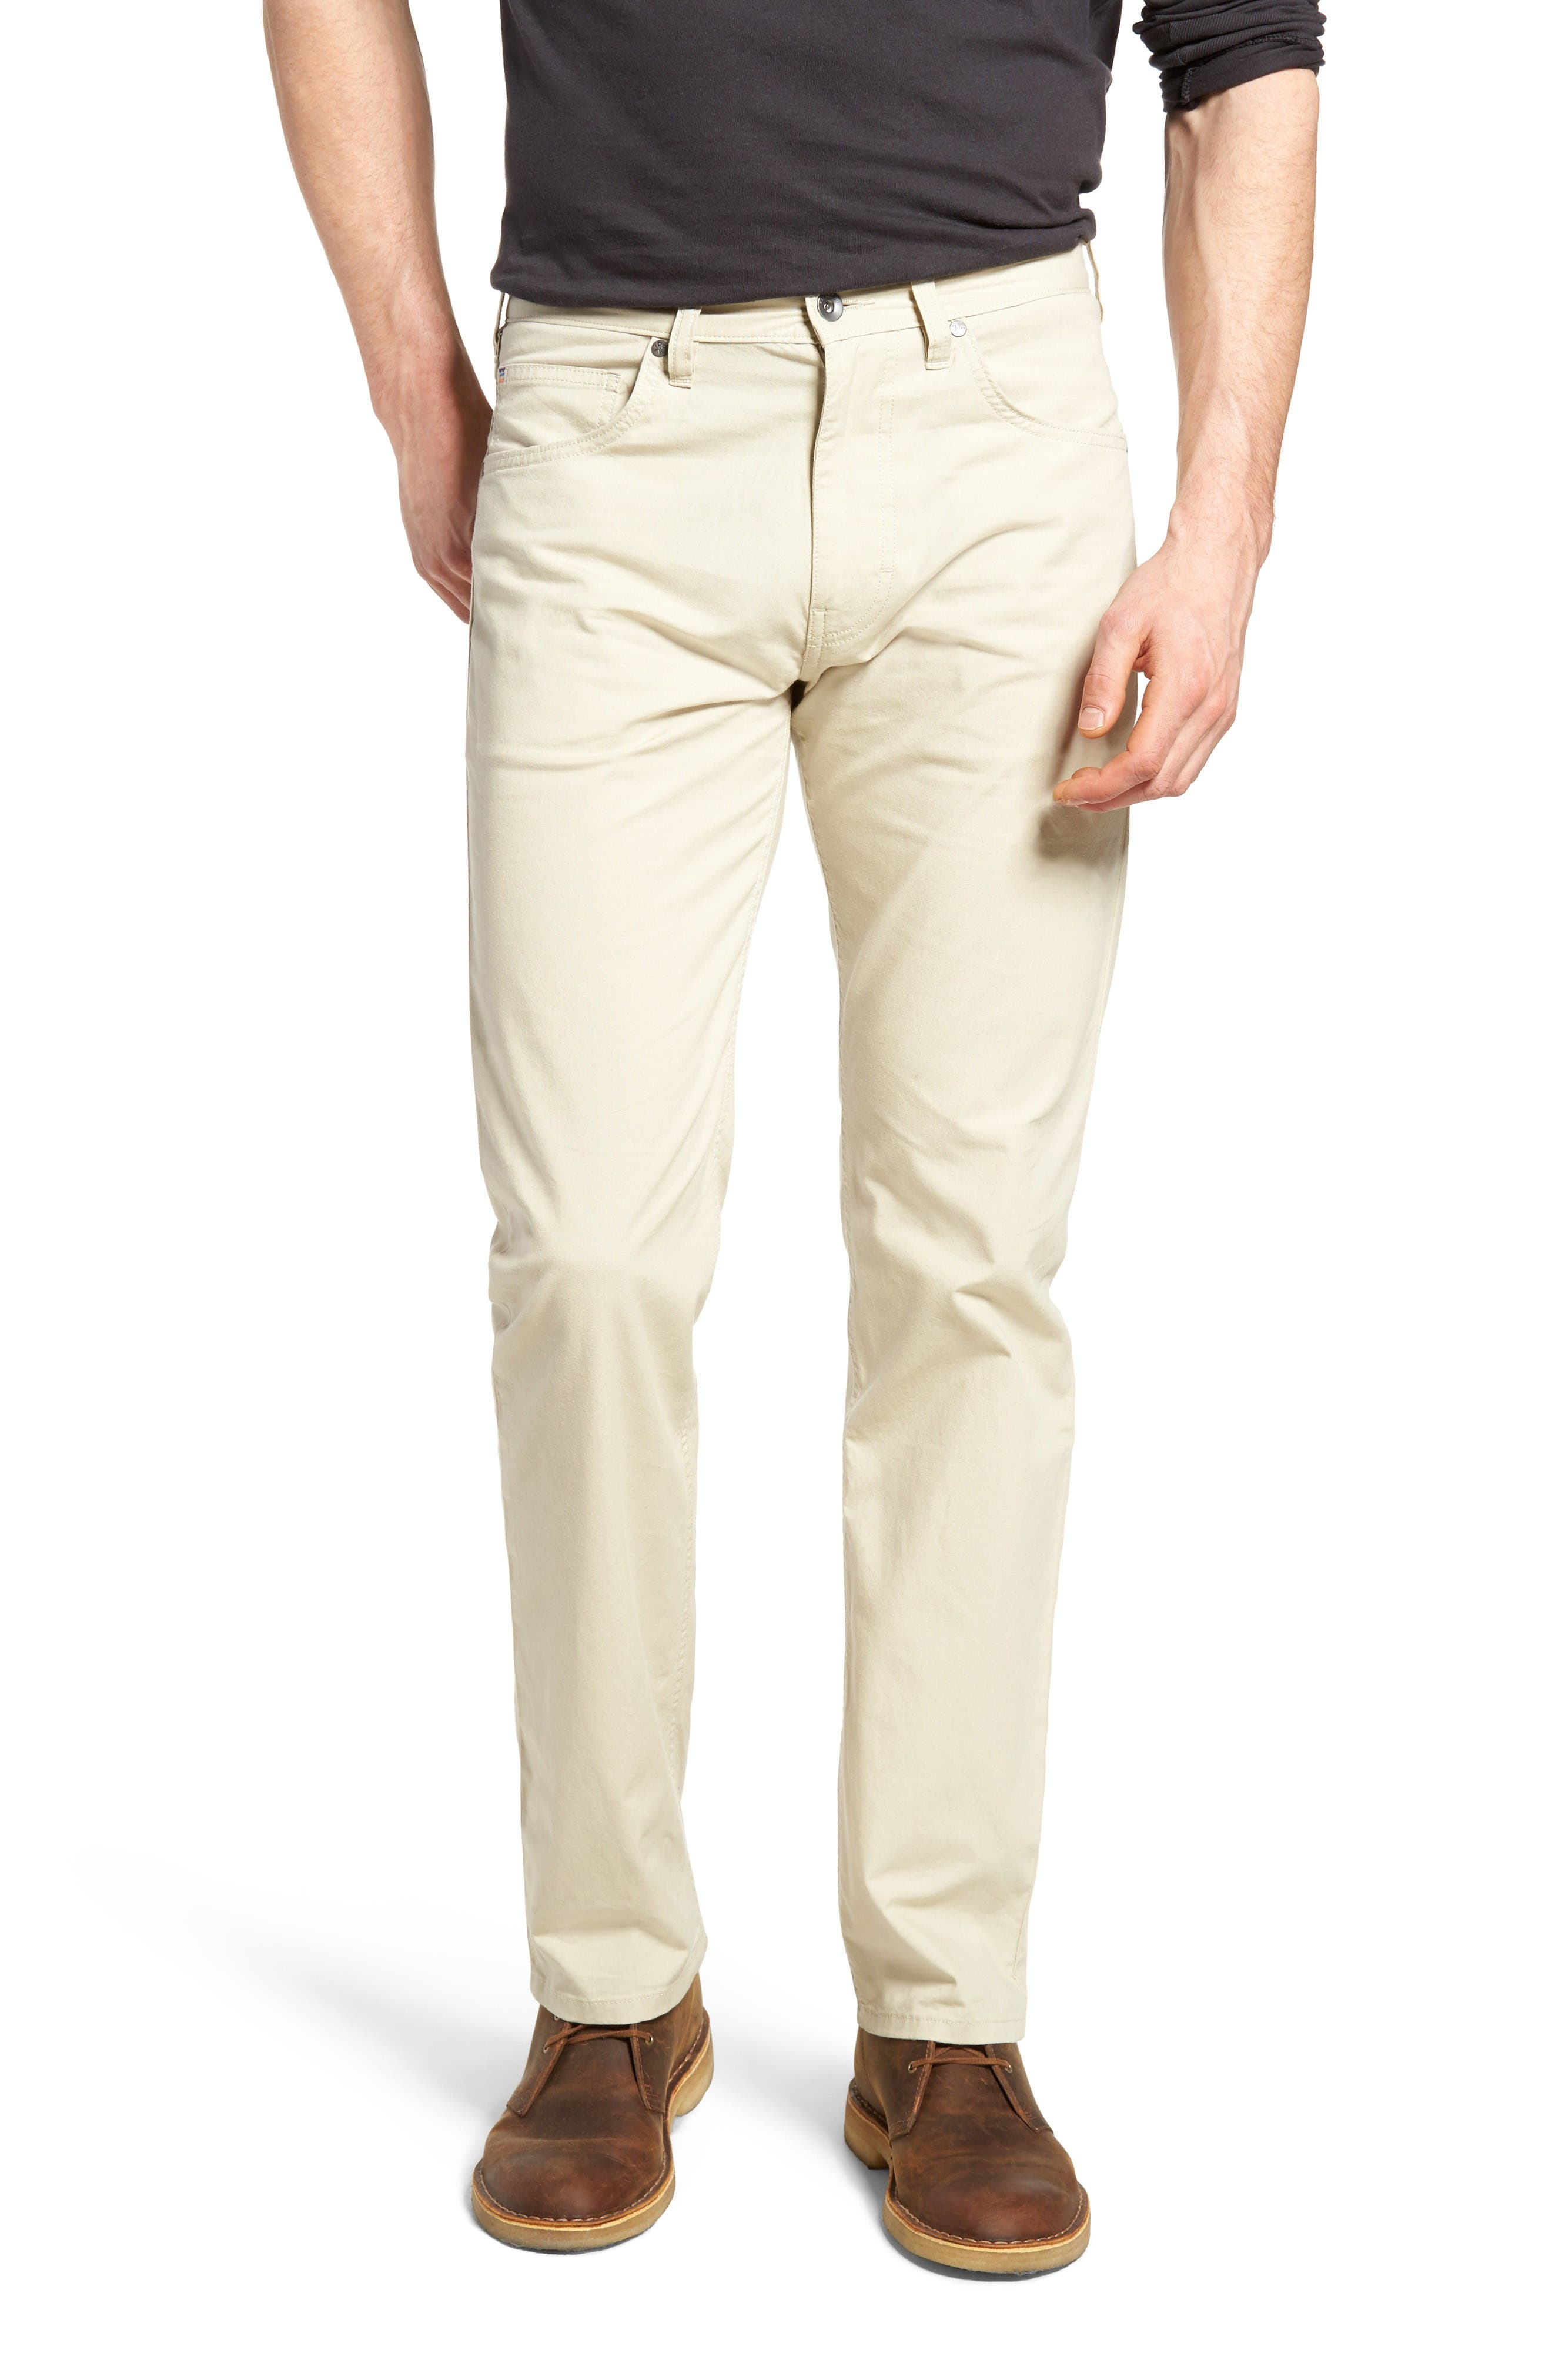 The Perfect Pair(s) - %color %size Pants for Women. Say goodbye to the stress of pant shopping. Stop the never-ending hunt for the perfect denim wash. We've got all the cuts, colors and washes your closet is craving. From retro-perfect flares to polished, tailored pairs, our selection of %color %size pants makes finding your dream fit a breeze.